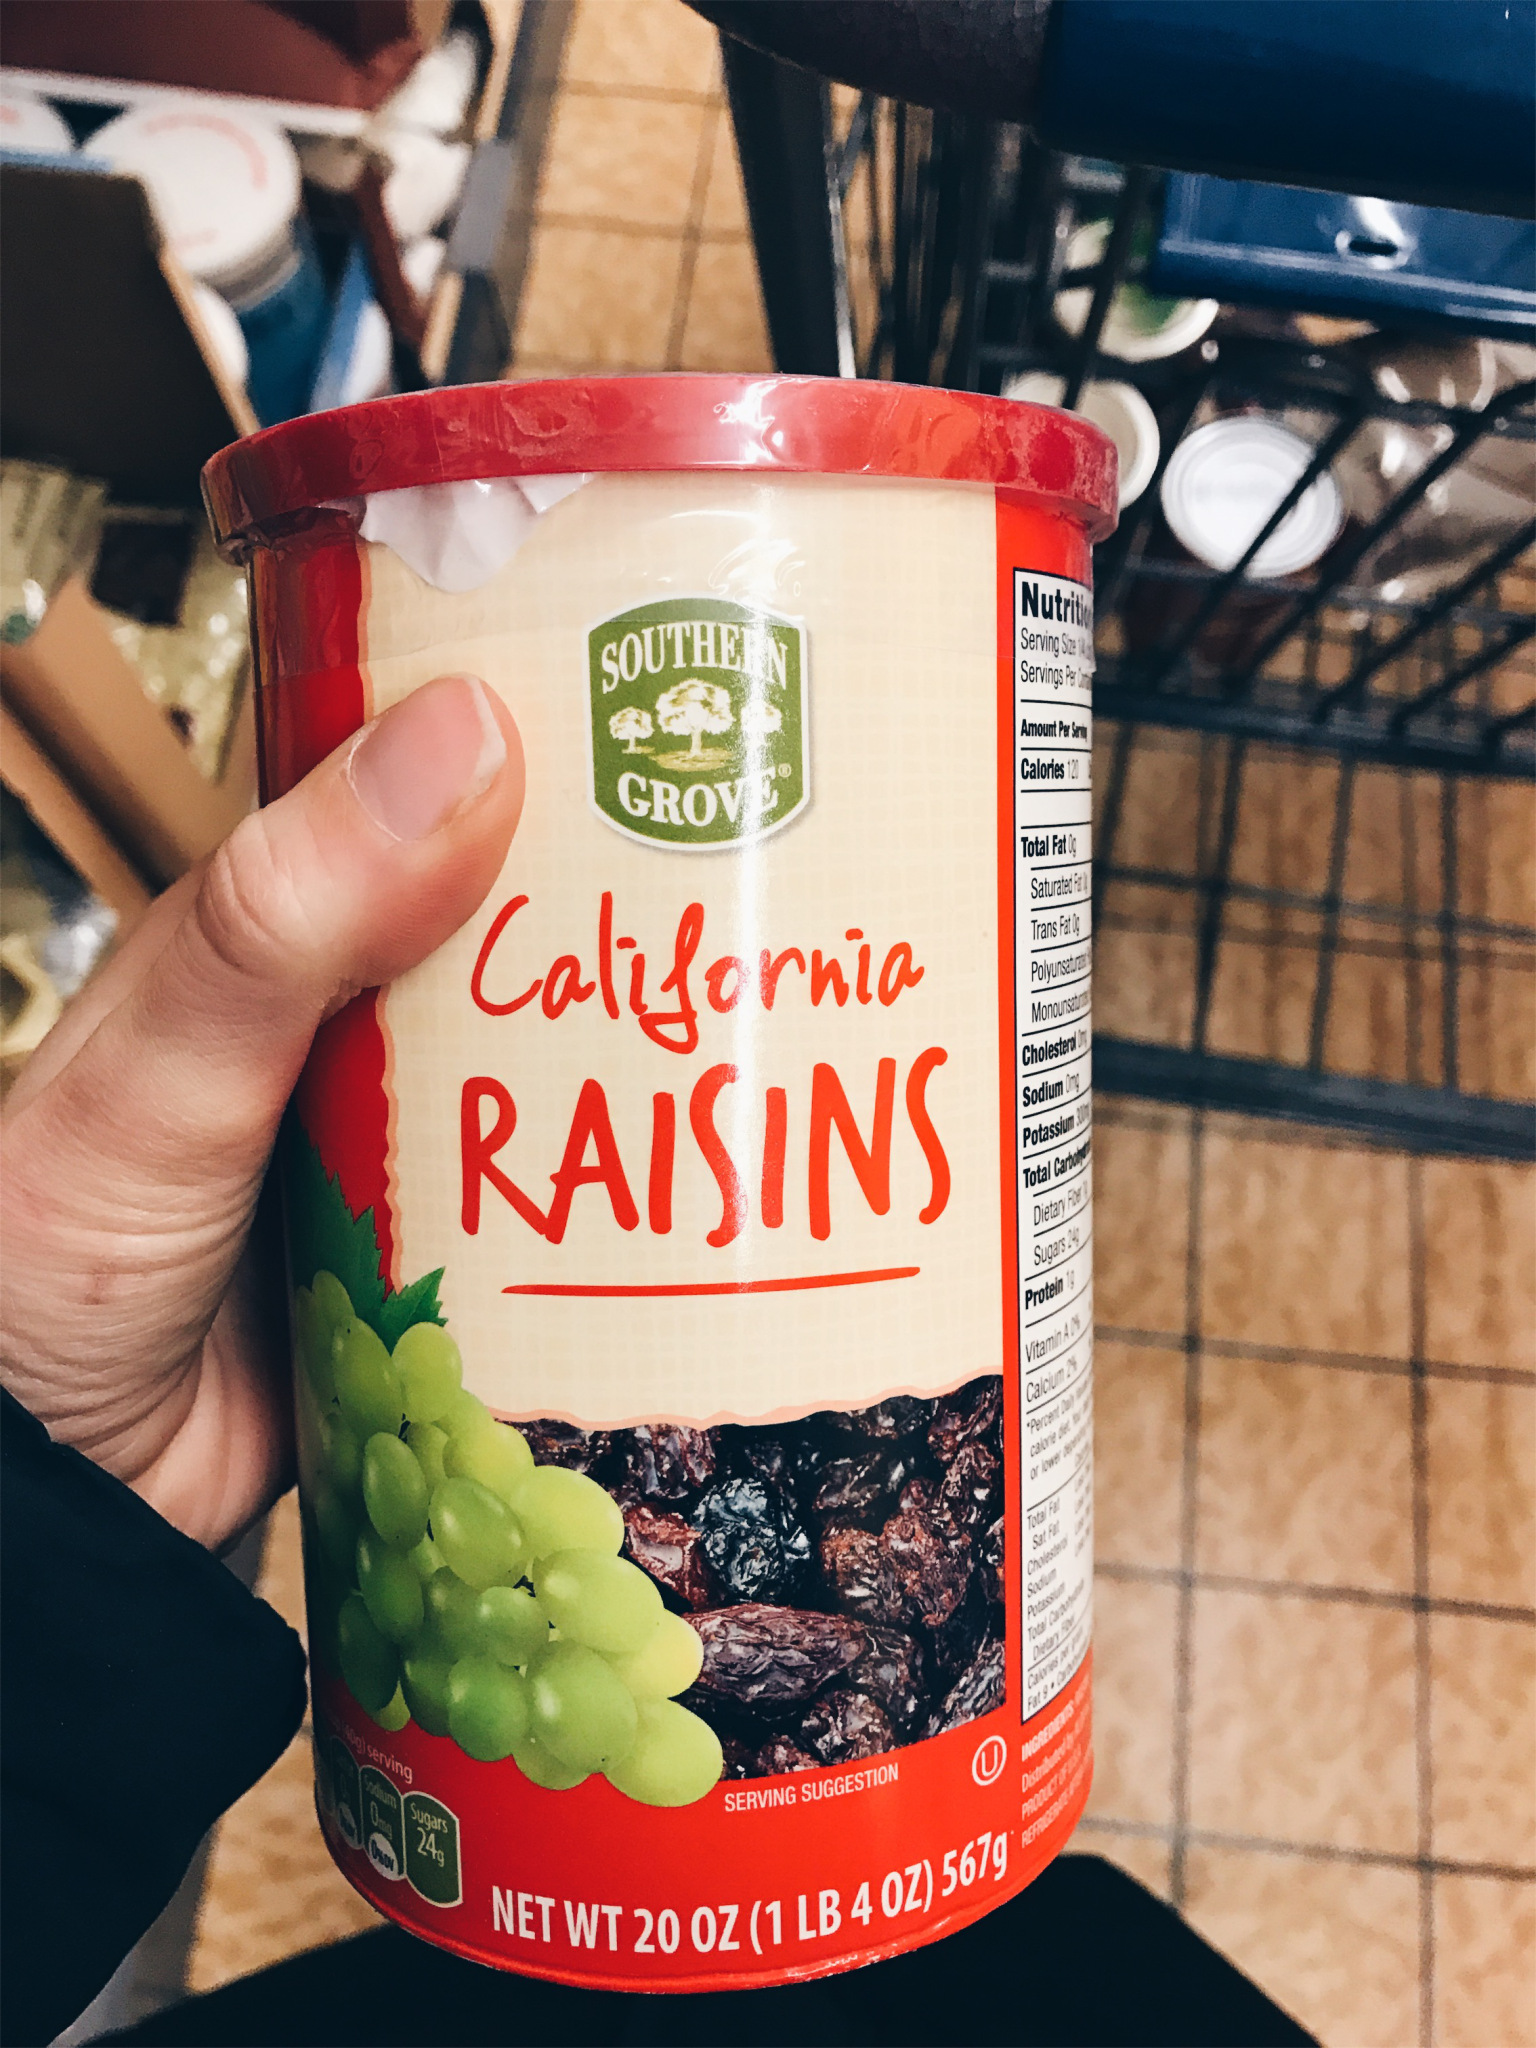 Another super easy snack. Many times in the evening my husband and I will throw some raisins, figs, and almonds in a bowl for a evening snack. ALDI has these in the mini boxes as well for grab'n'go.